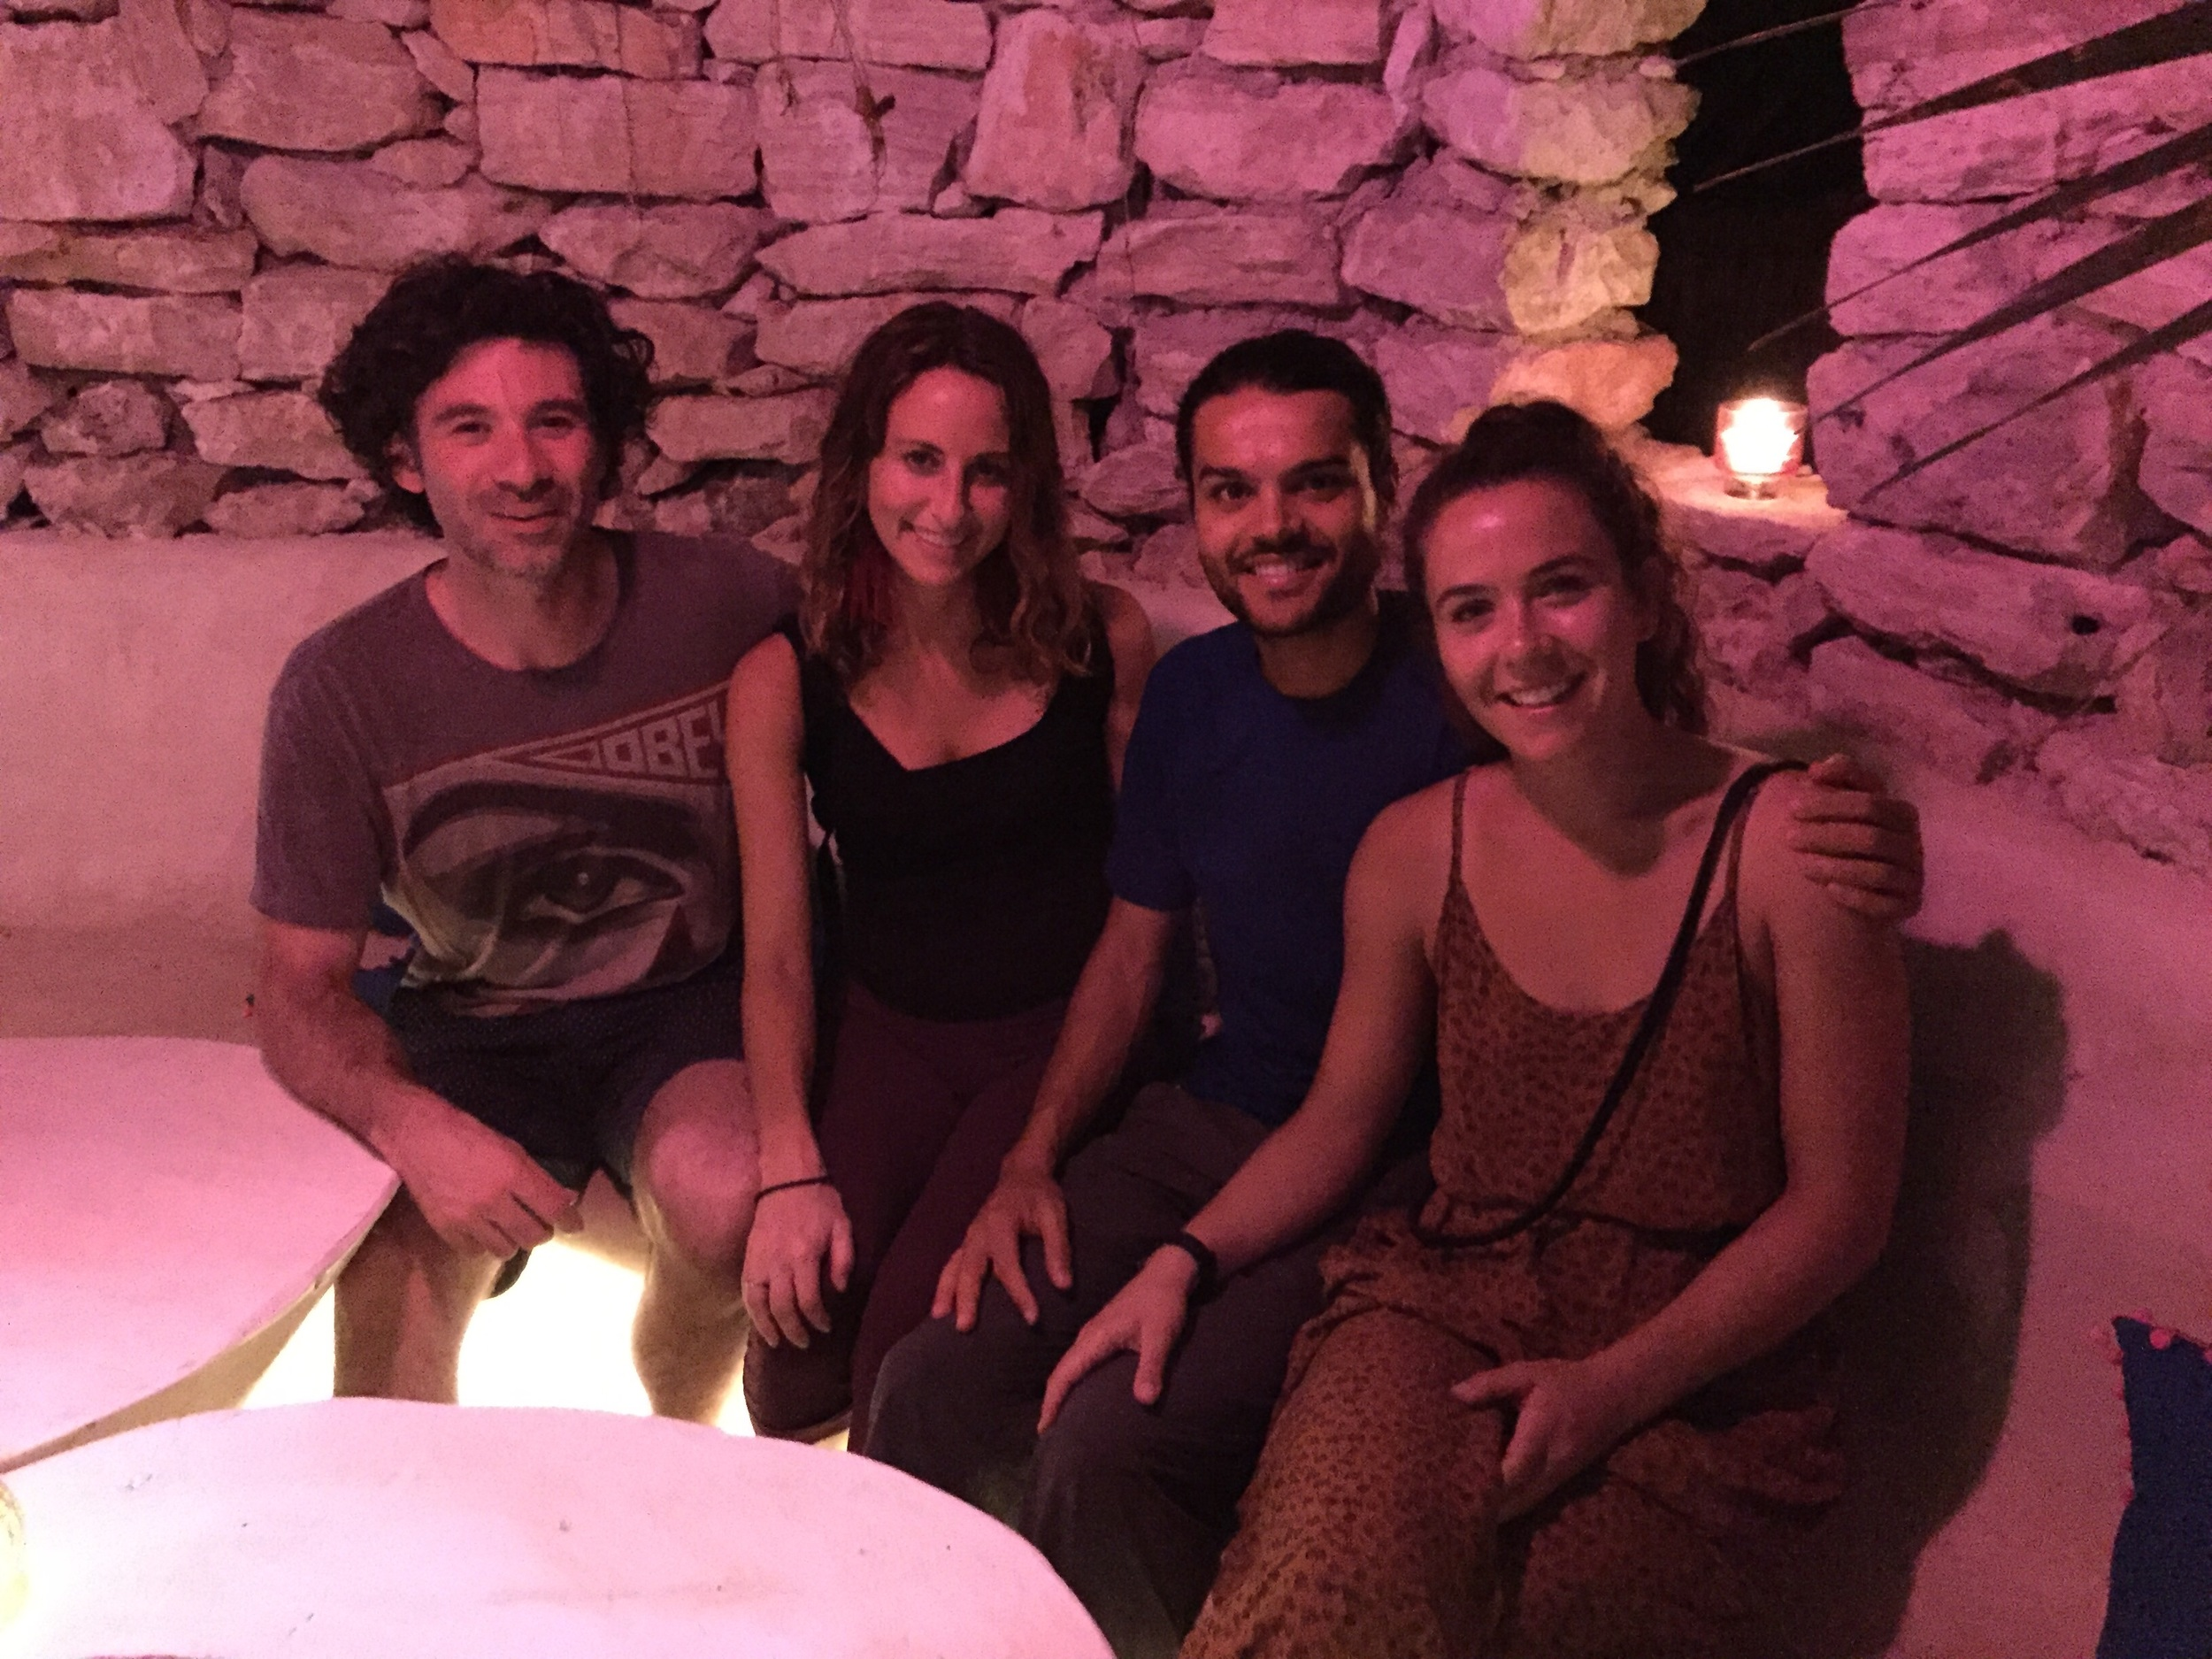 Also randomly bumped into Hayden (Liv's friend from SF) and Justin (our new friend!) at a restaurant in Tulum and then spent NYE with them on the beach! Cooked them dinner out of the back of our car and danced the night away on the playa.